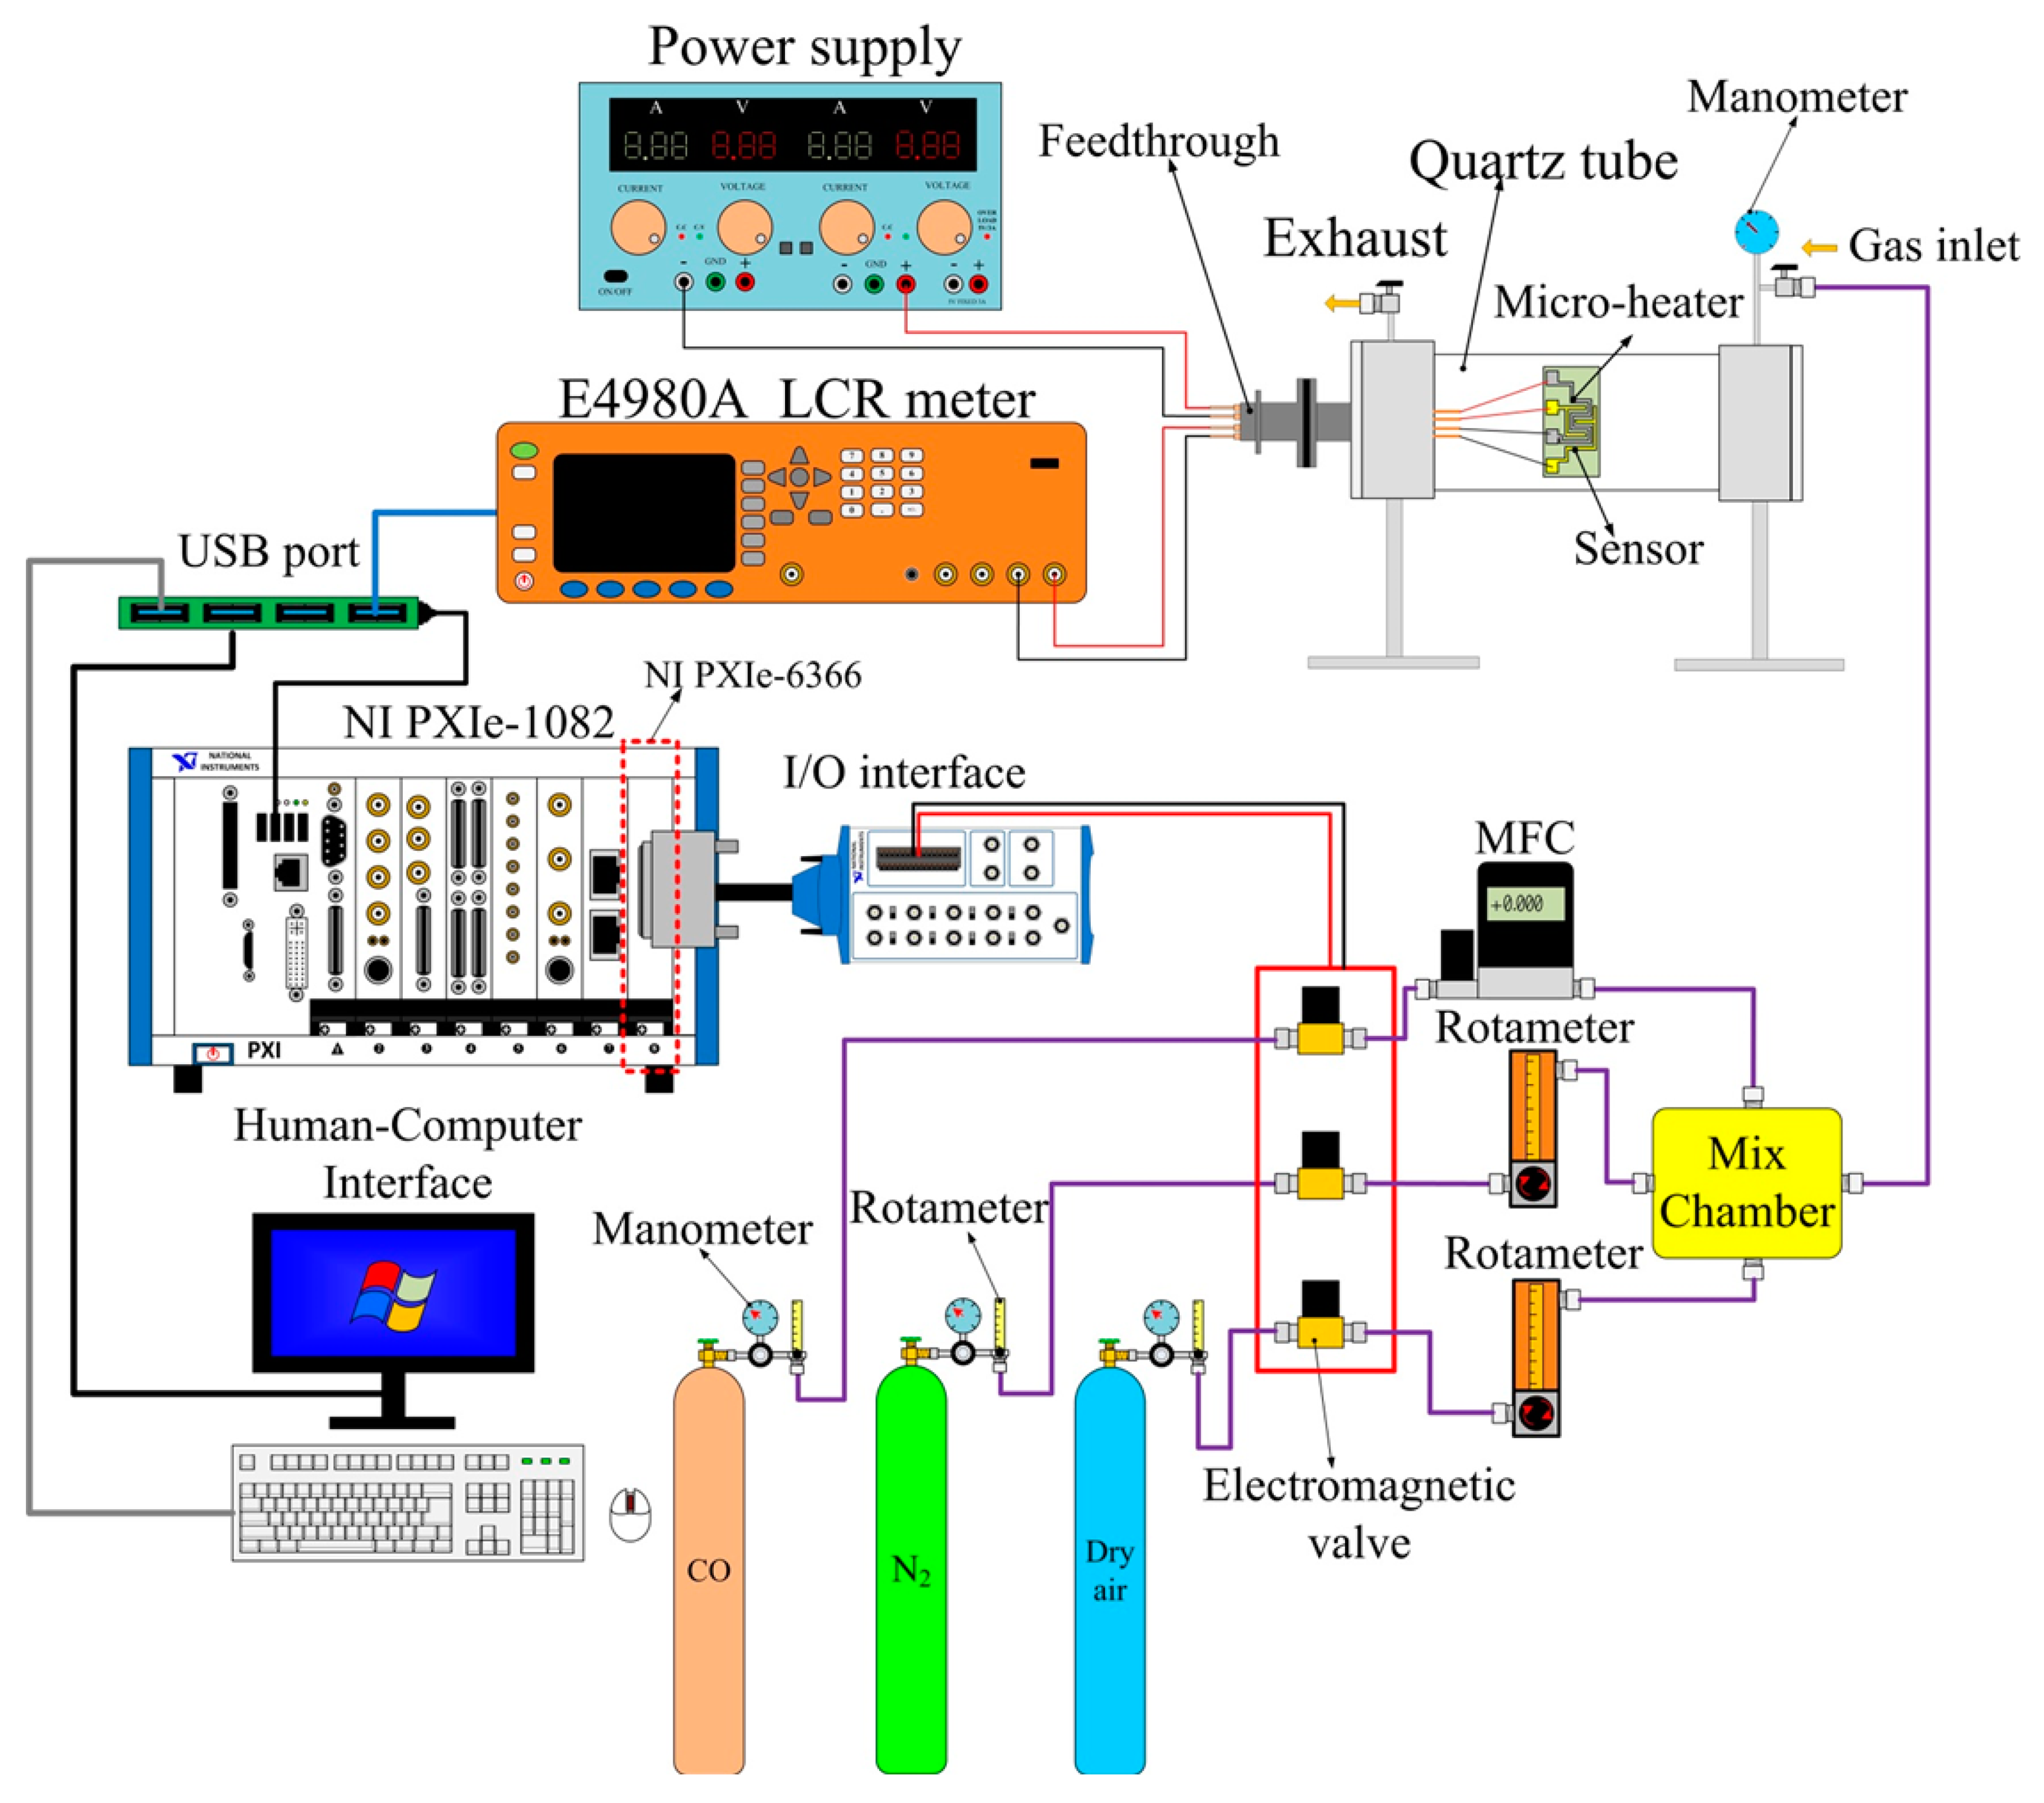 Sensors Free Full Text A Rapid Process For Fabricating Gas Block Diagram Of The Human Computer Interface System Schematic Controlled Sensing Characterization 14 12219f6 1024